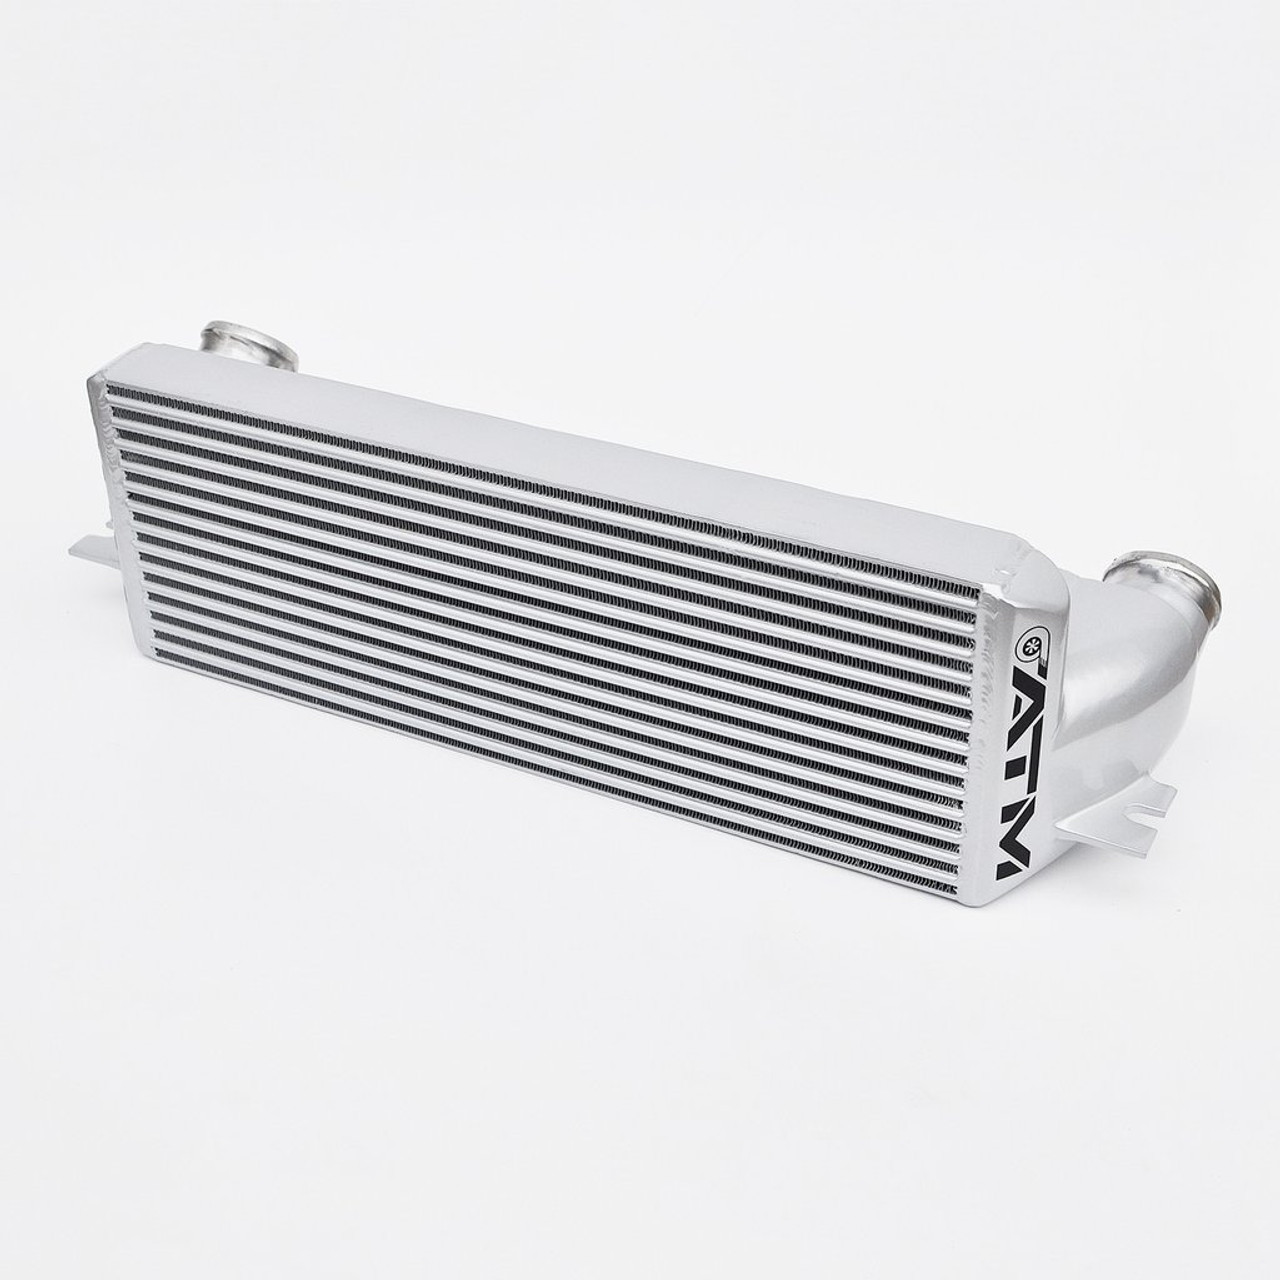 ATM BMW E90, E92 M57 335D Intercooler 2008-2012